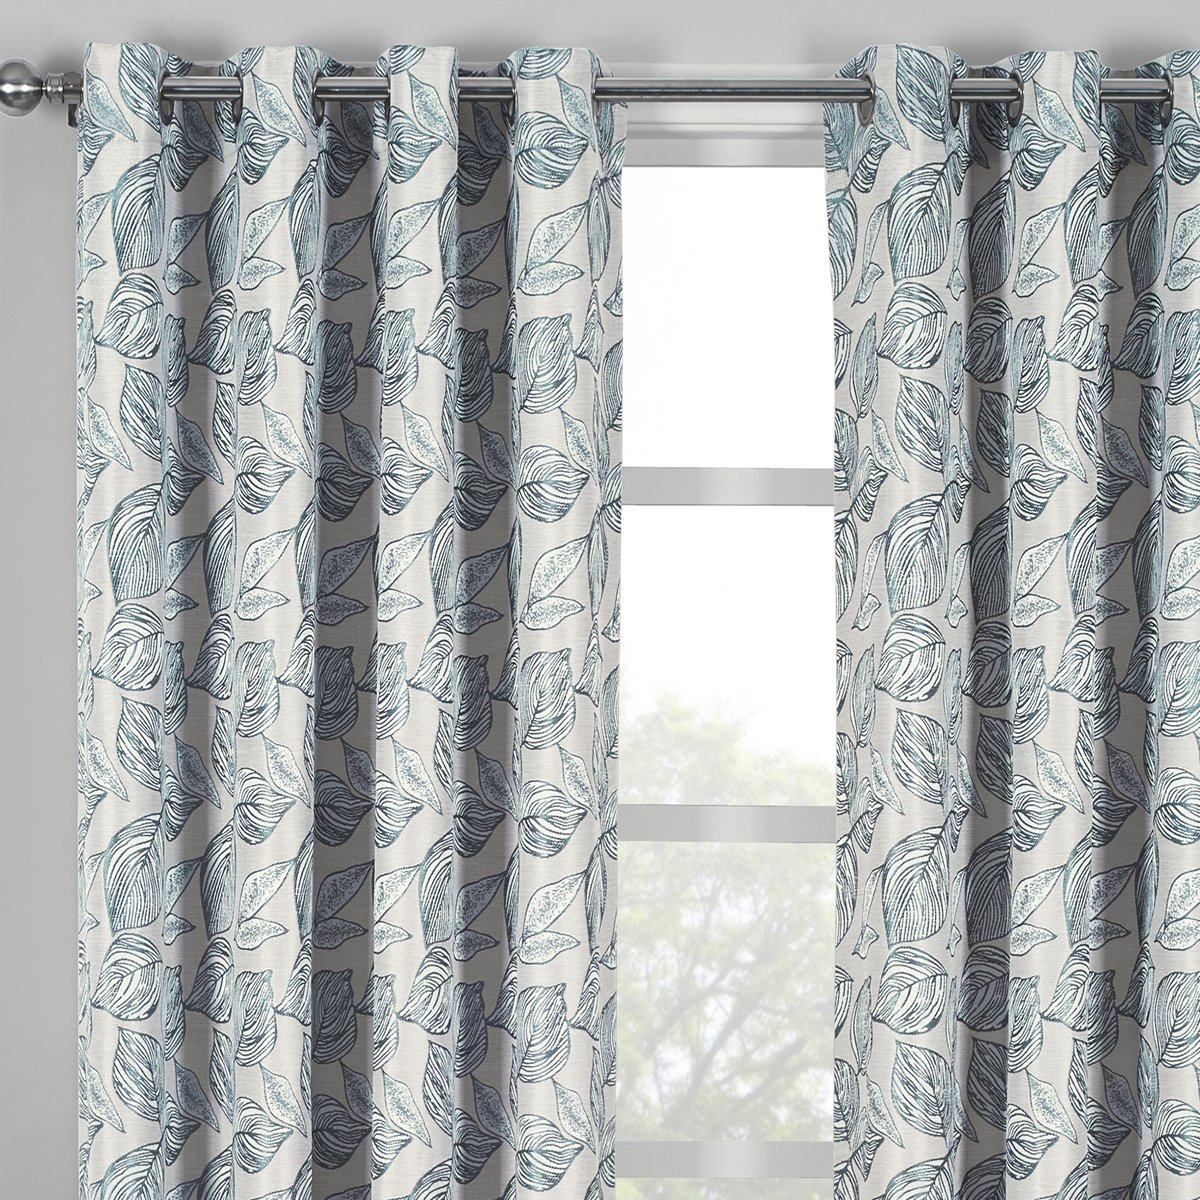 Catalina Gray, Top Grommet Jacquard Window Curtain Panel, Set of 2 Panels, 108×120 Inches Pair, by Royal Hotel